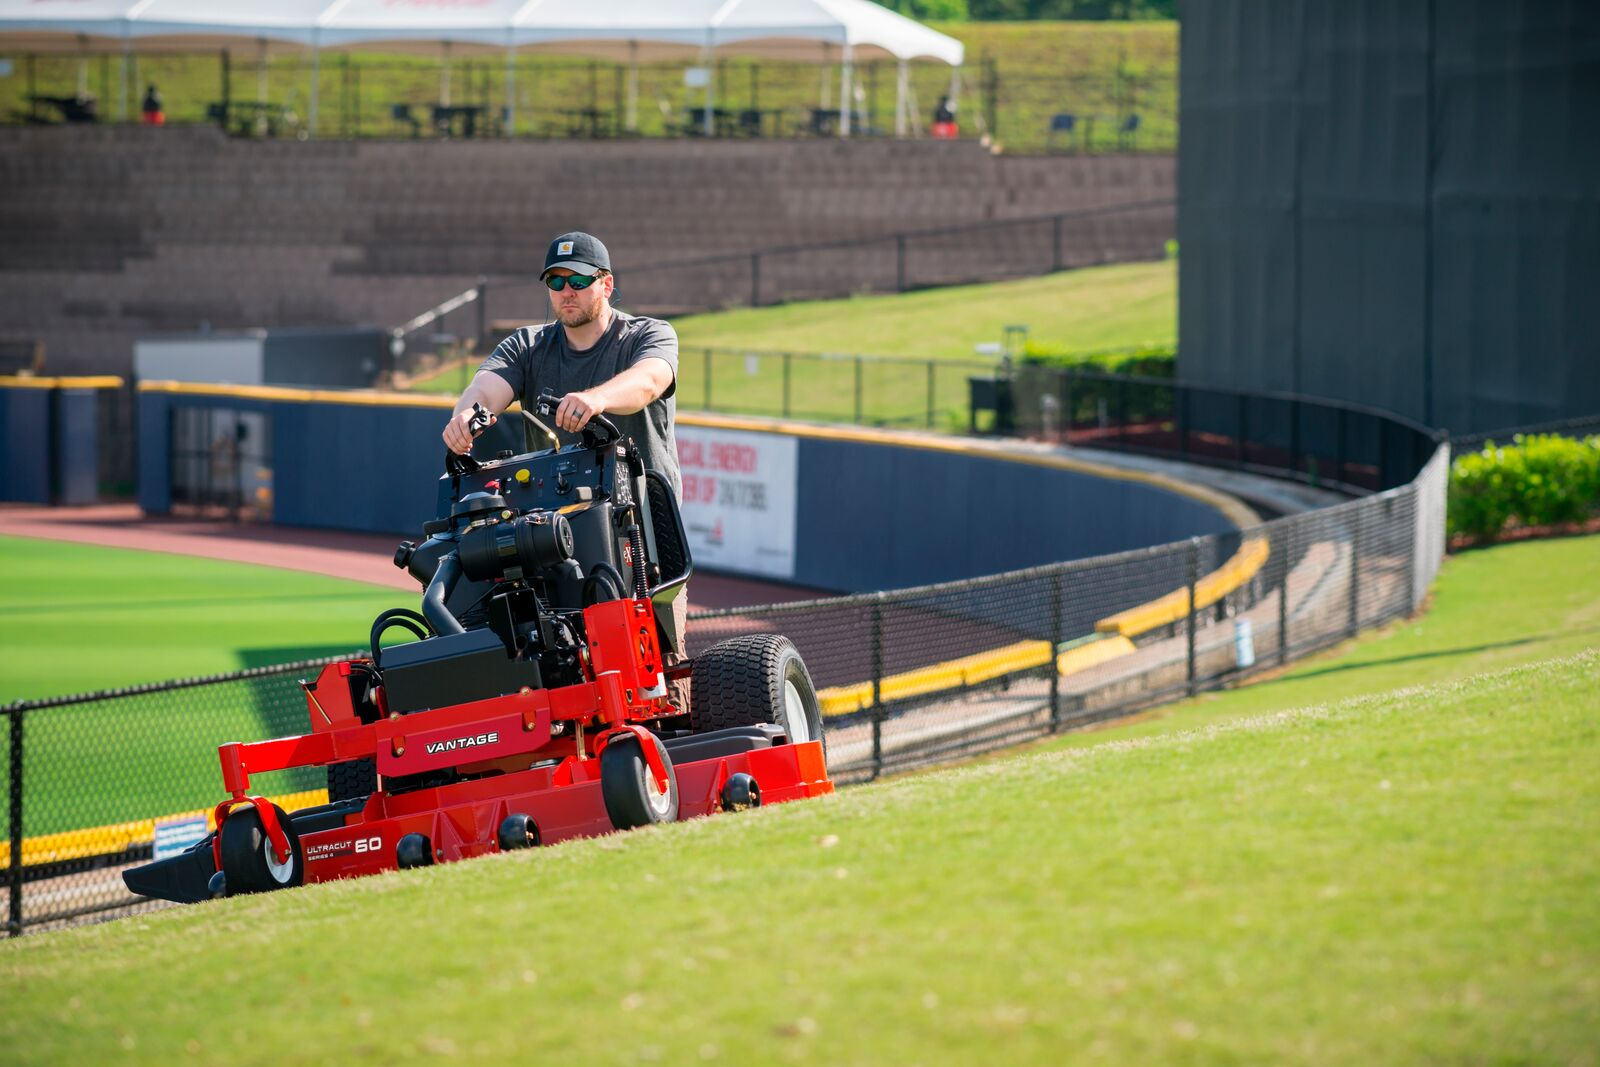 The Advantages of Stand-on Mowers for Lawn Care Businesses | Exmark Blog